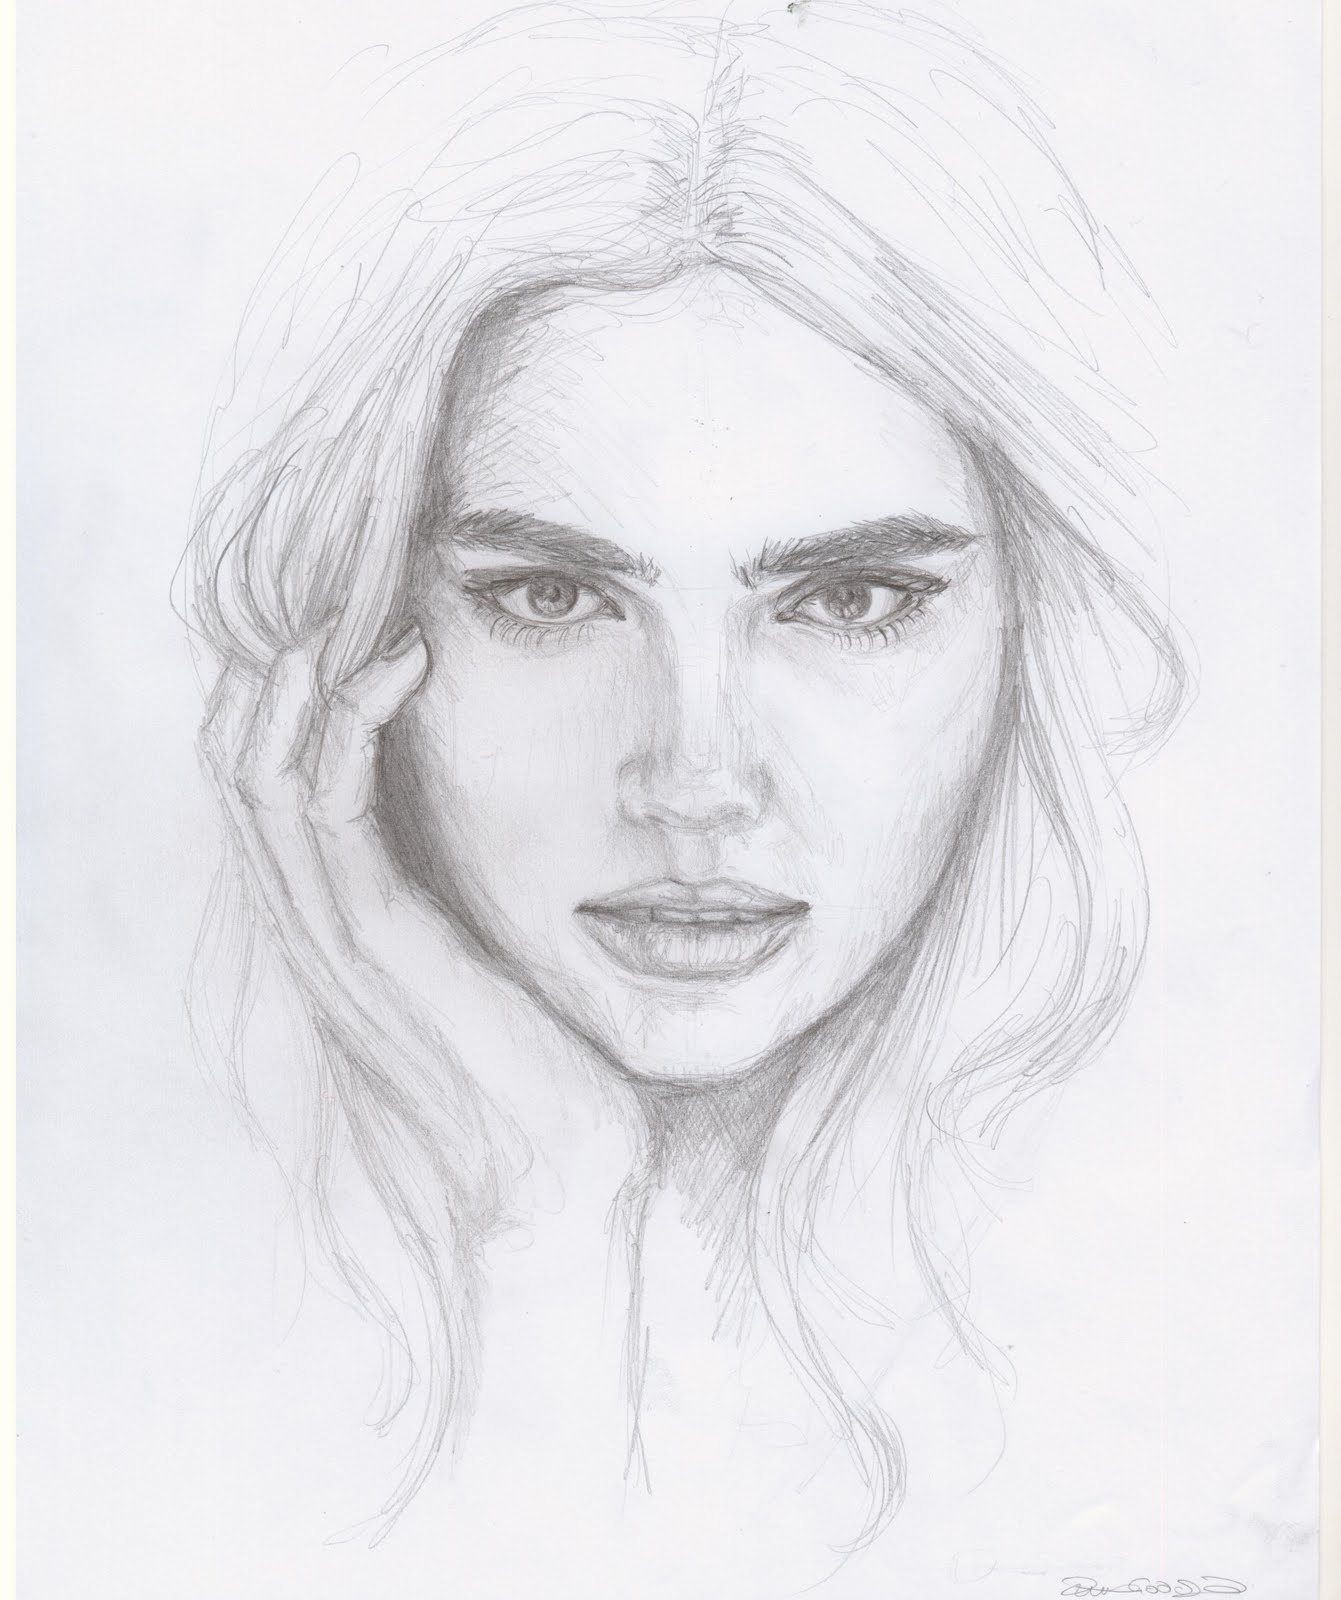 Drawn portrait simple A Drawing SKETHES Face ART